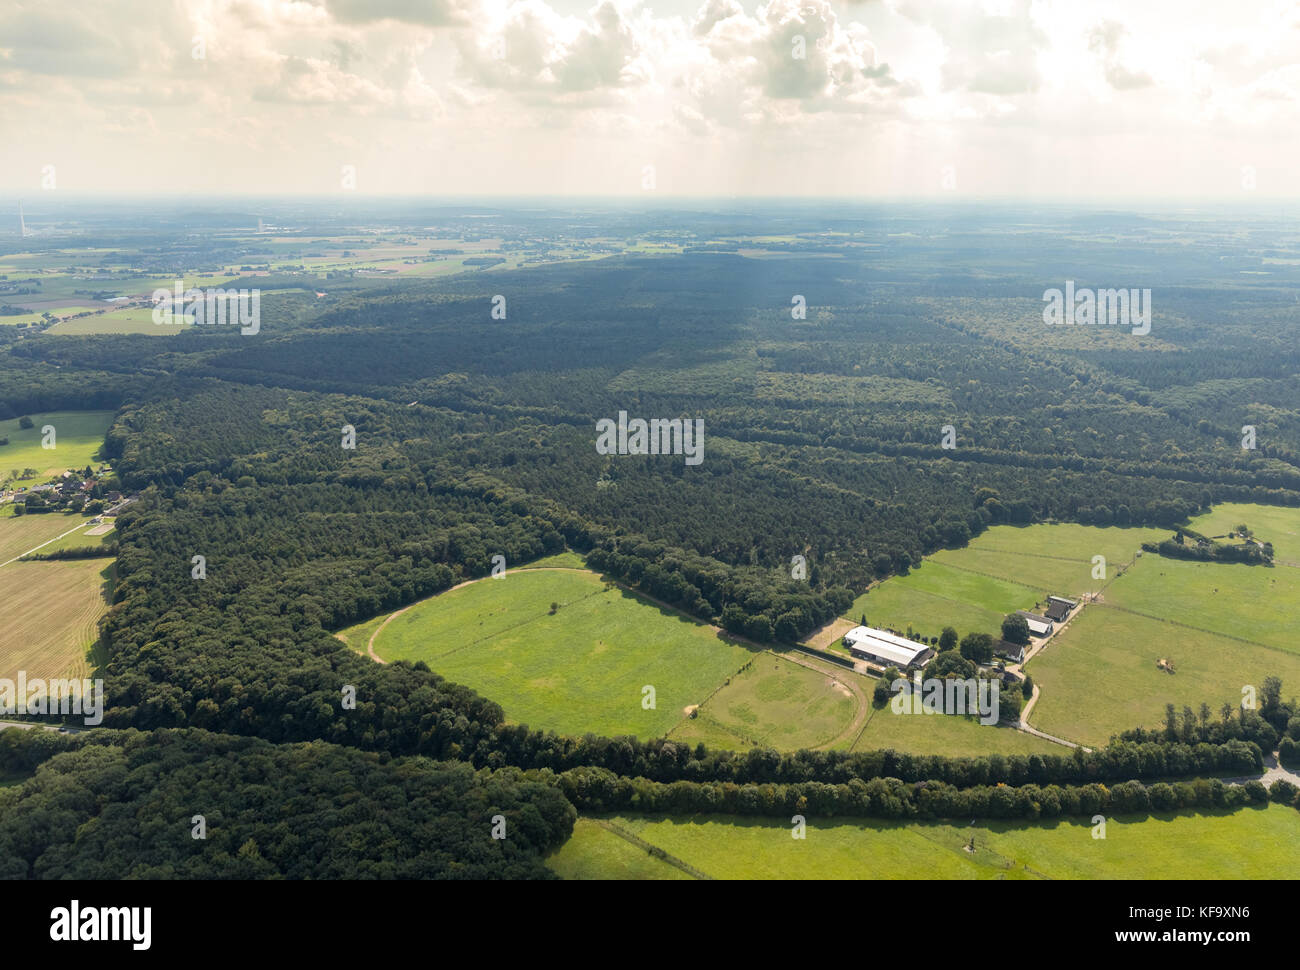 Erlenbruchwald and humid forest clearing in the light, Kamp-Lintfort, Alpen, Niederrhein, North Rhine-Westphalia, - Stock Image